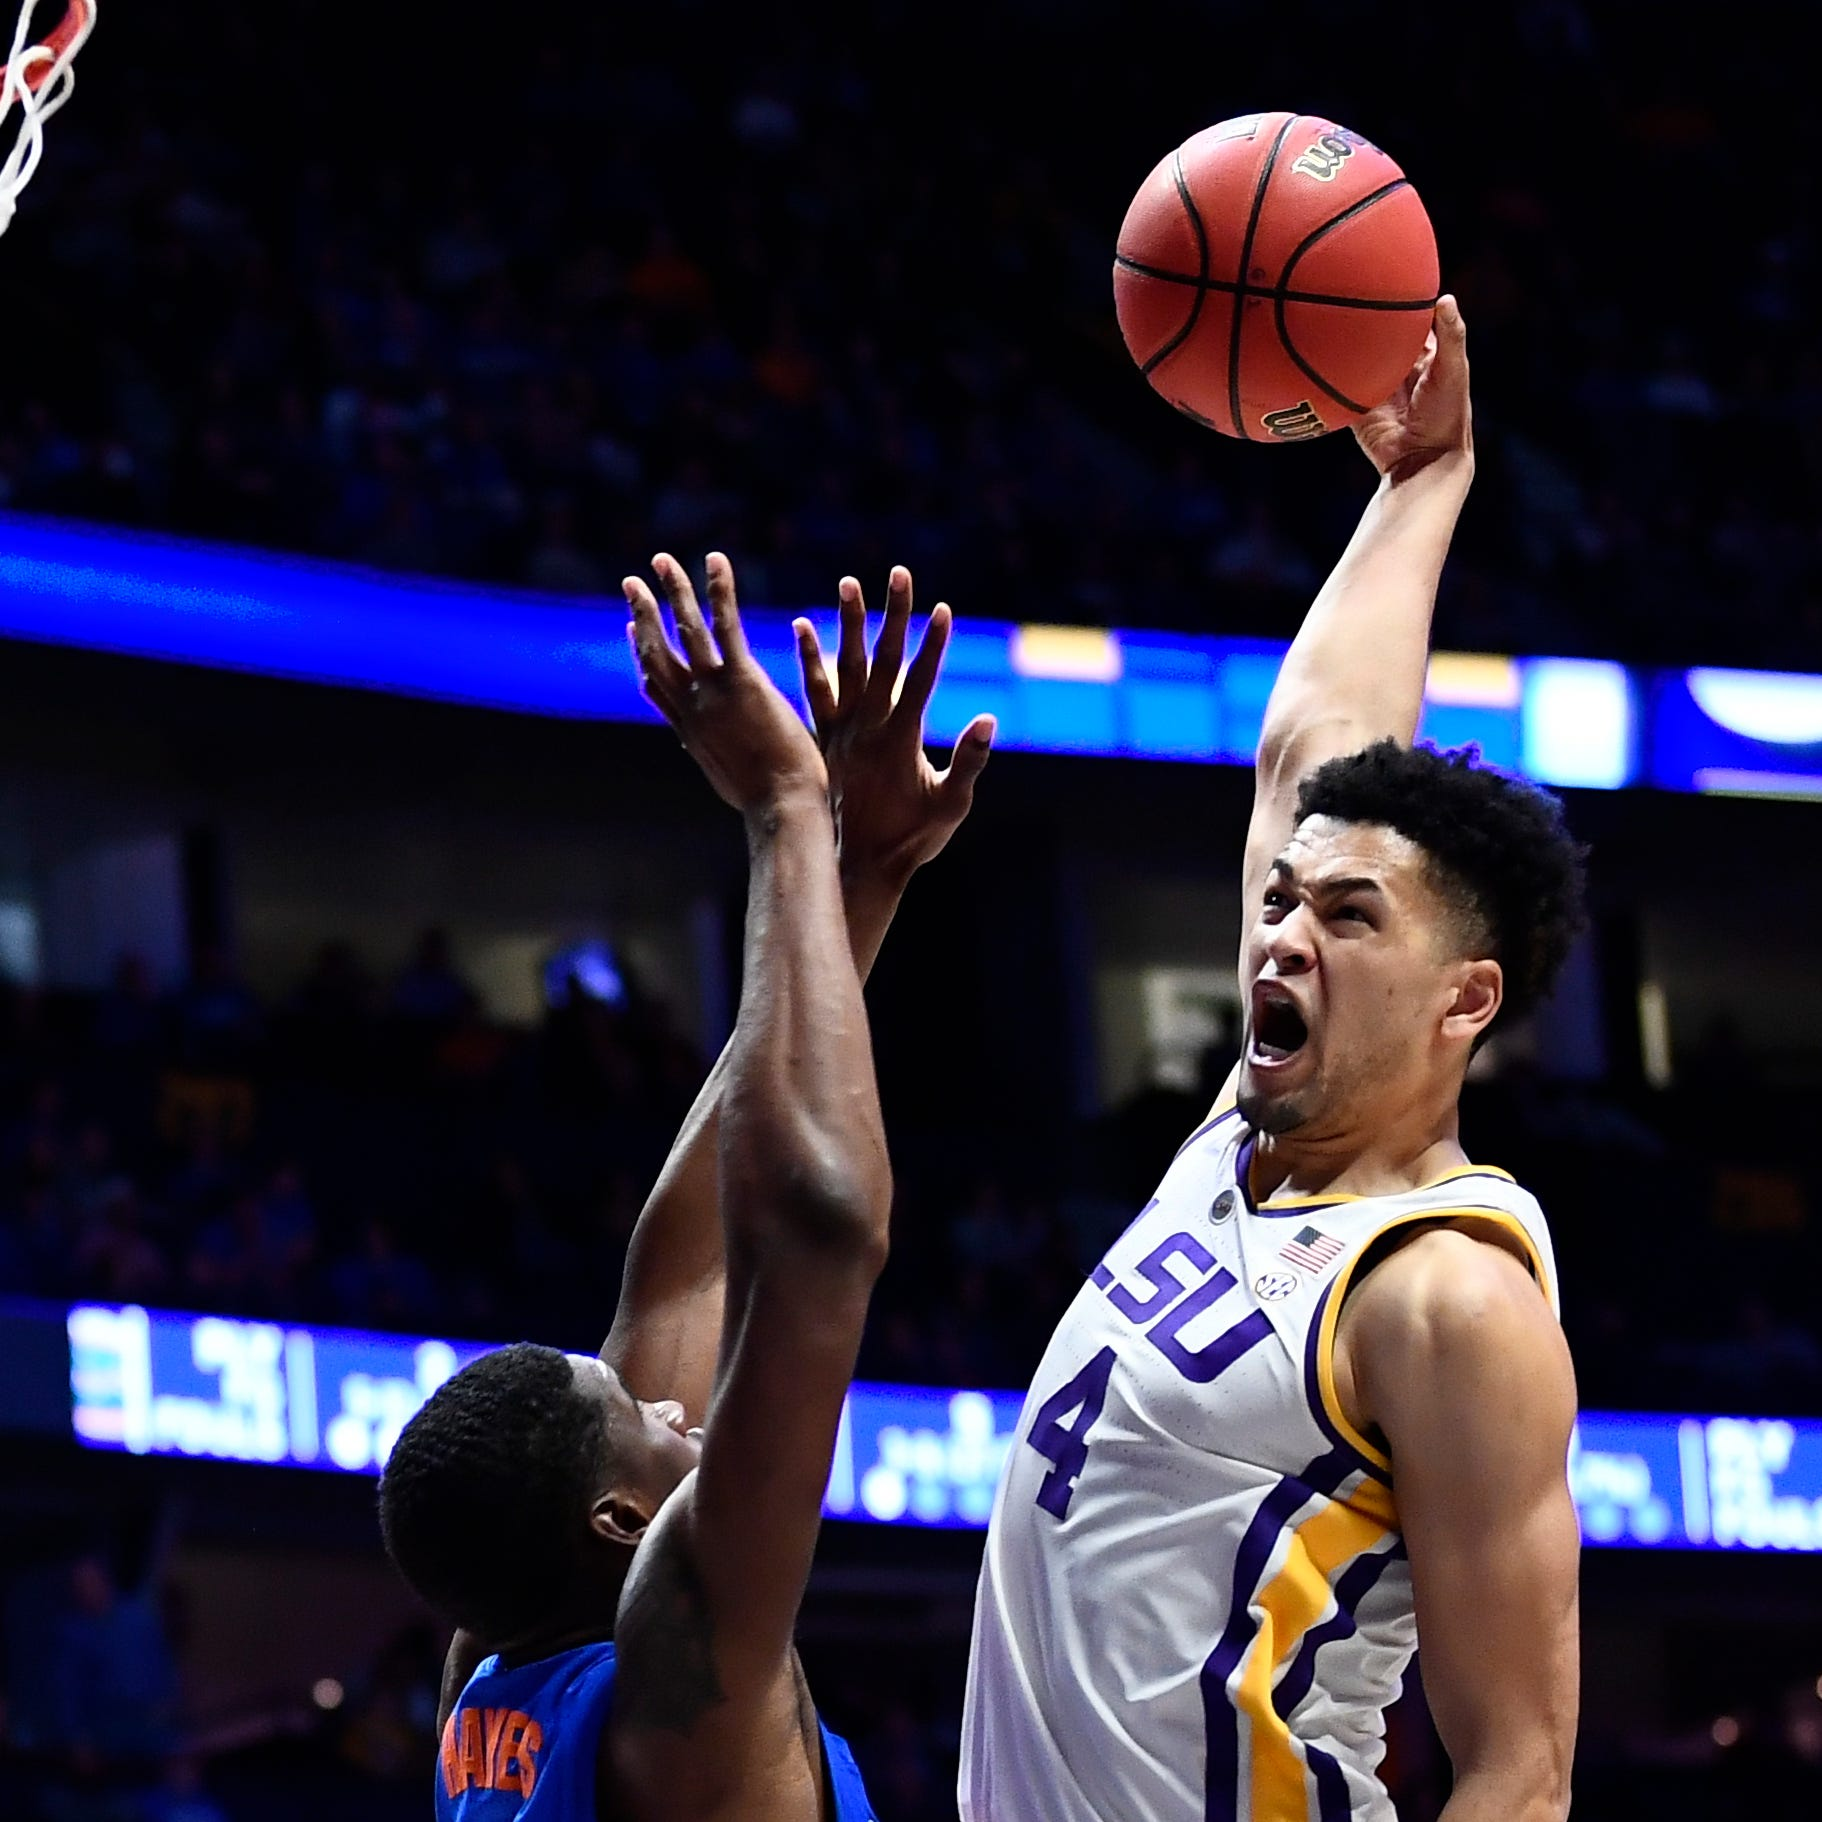 LSU junior guard Skylar Mays will give the NBA Draft a look as well, but he could return